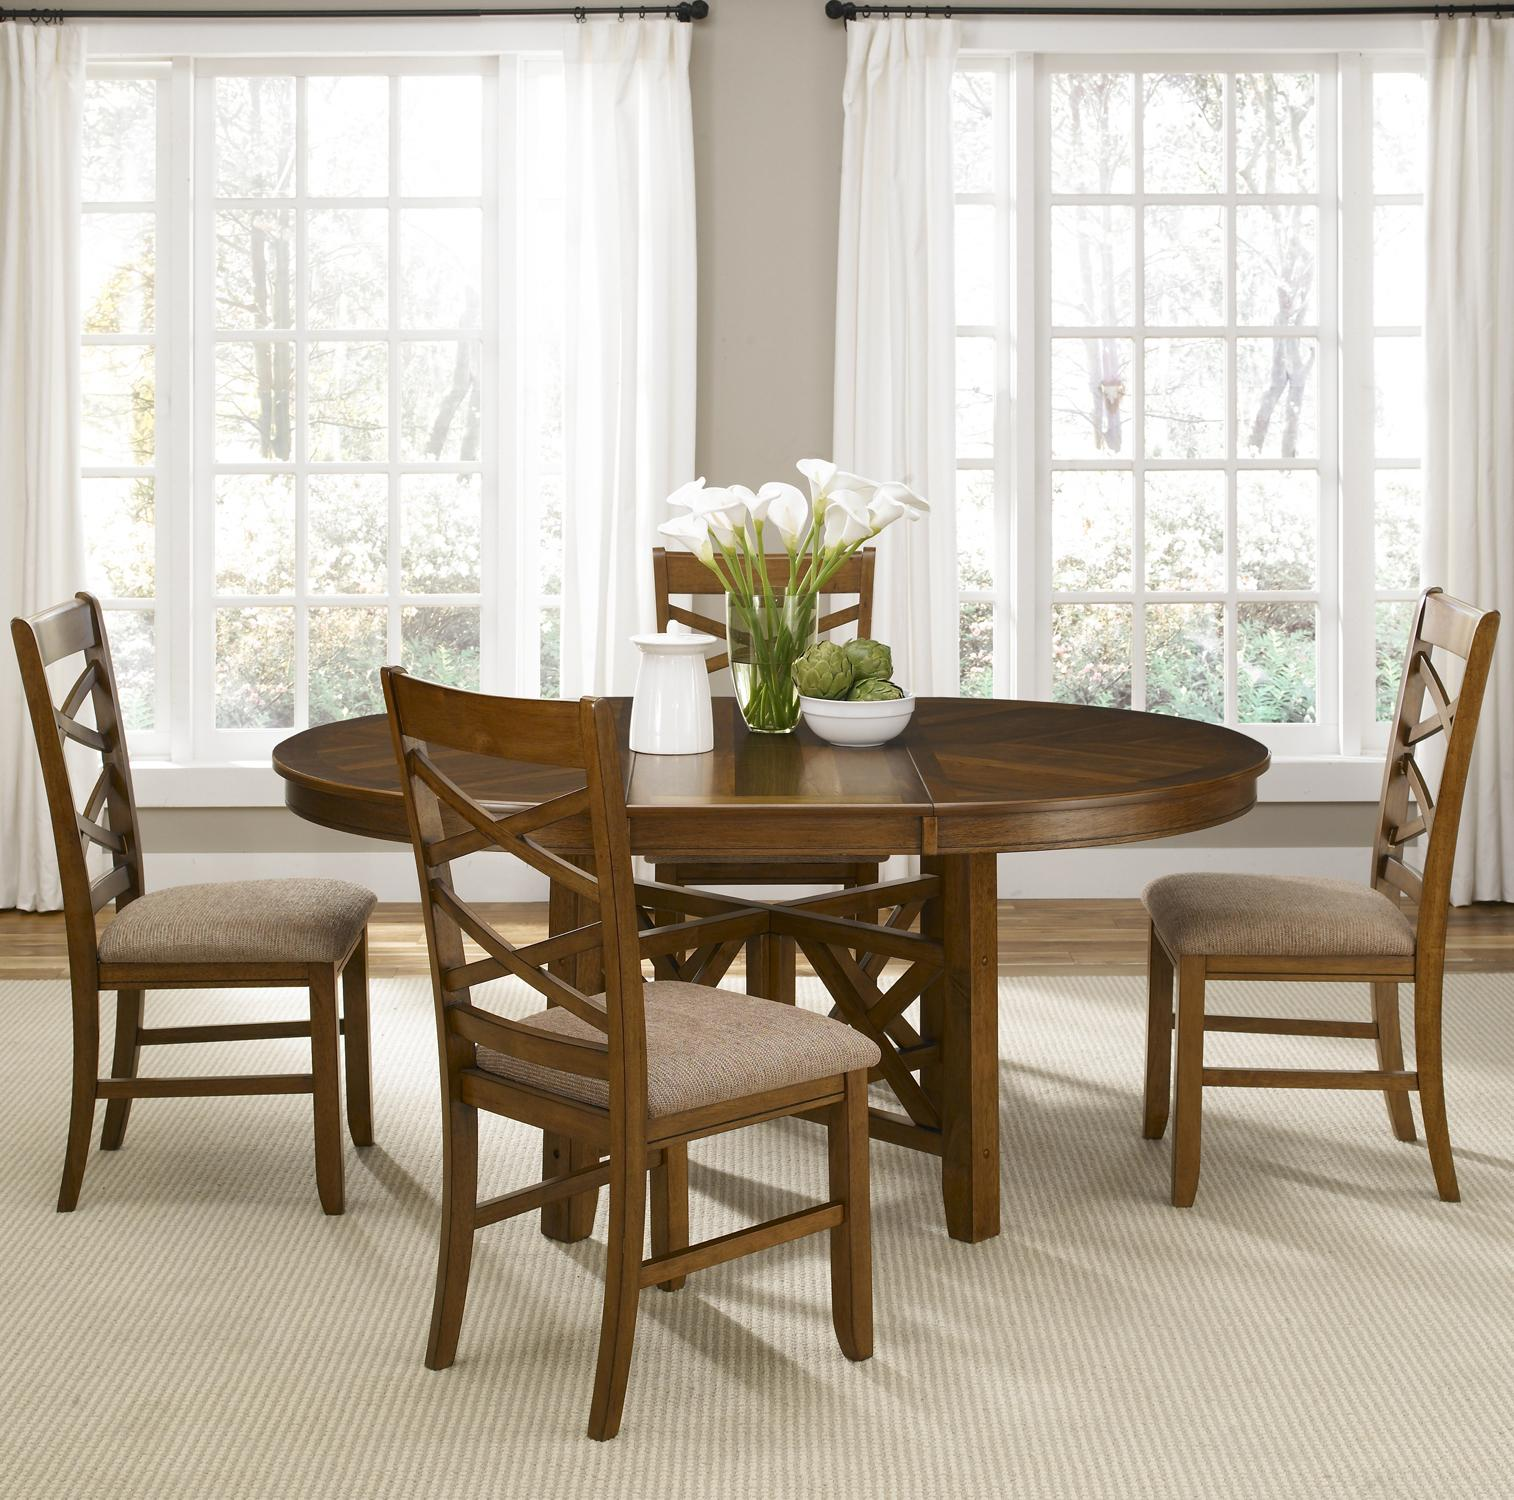 Liberty Furniture Bistro 5 Piece Dining Table and Chair Set - Item Number: 64-CD-SET16